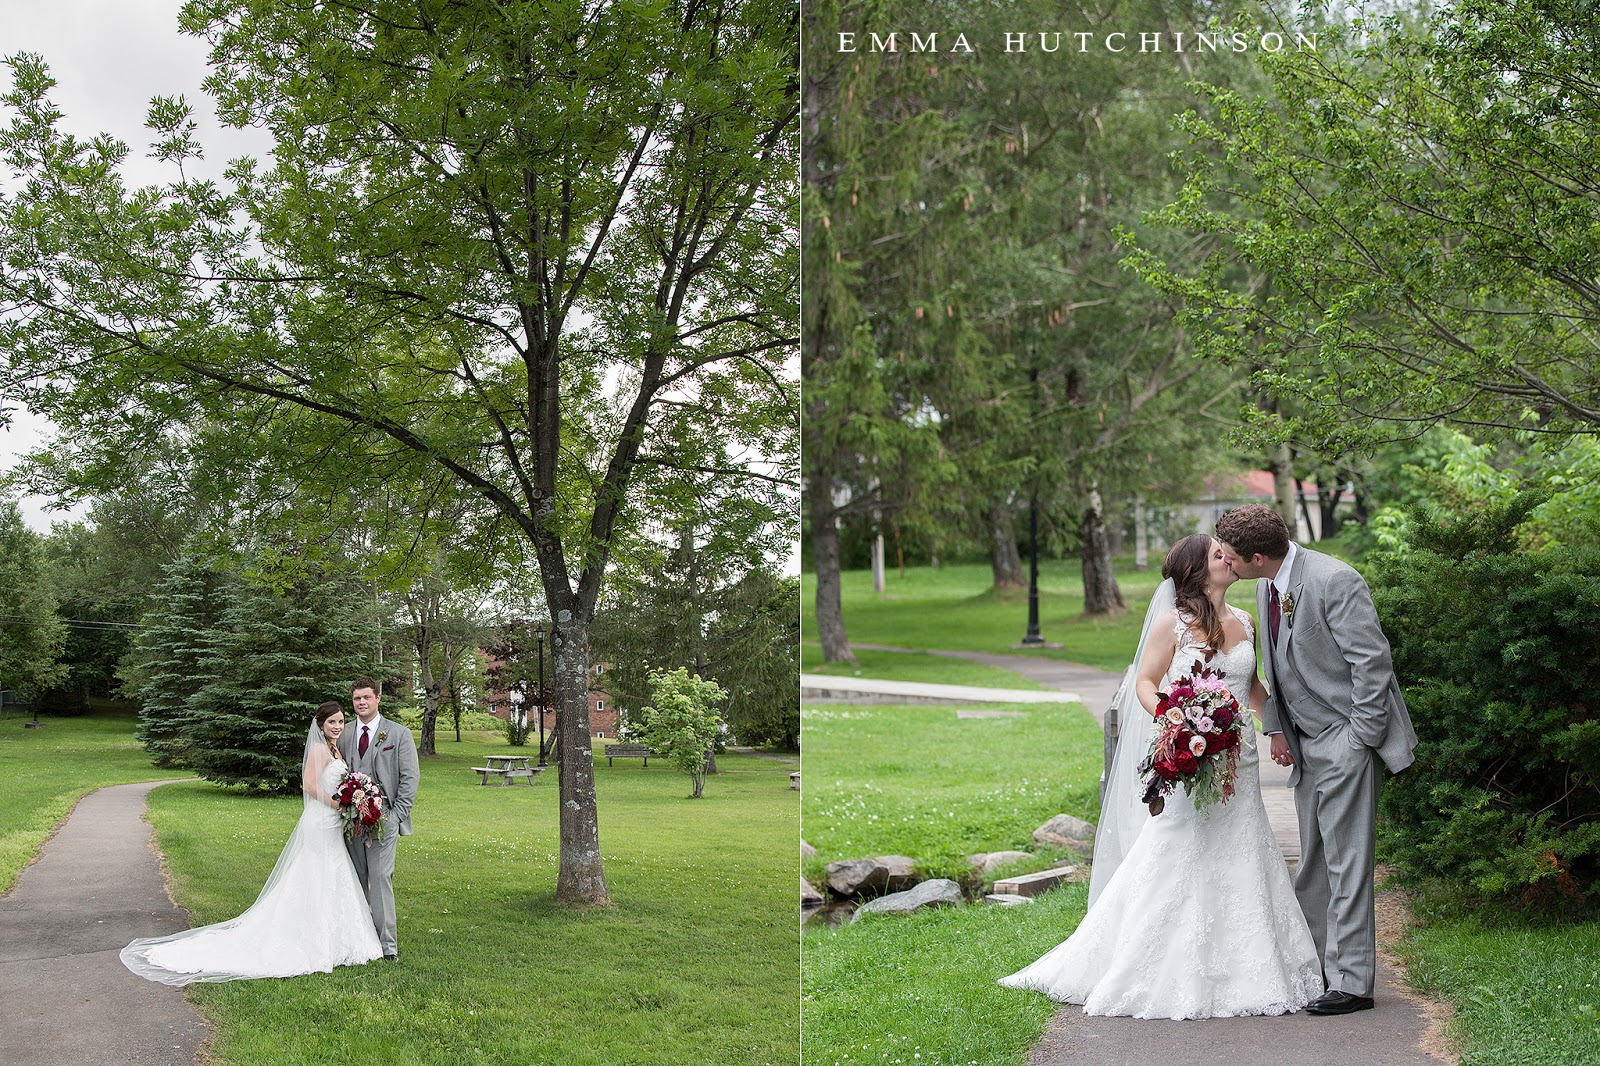 Weddings at the Church Road Park photographed by Emma Hutchinson Photography